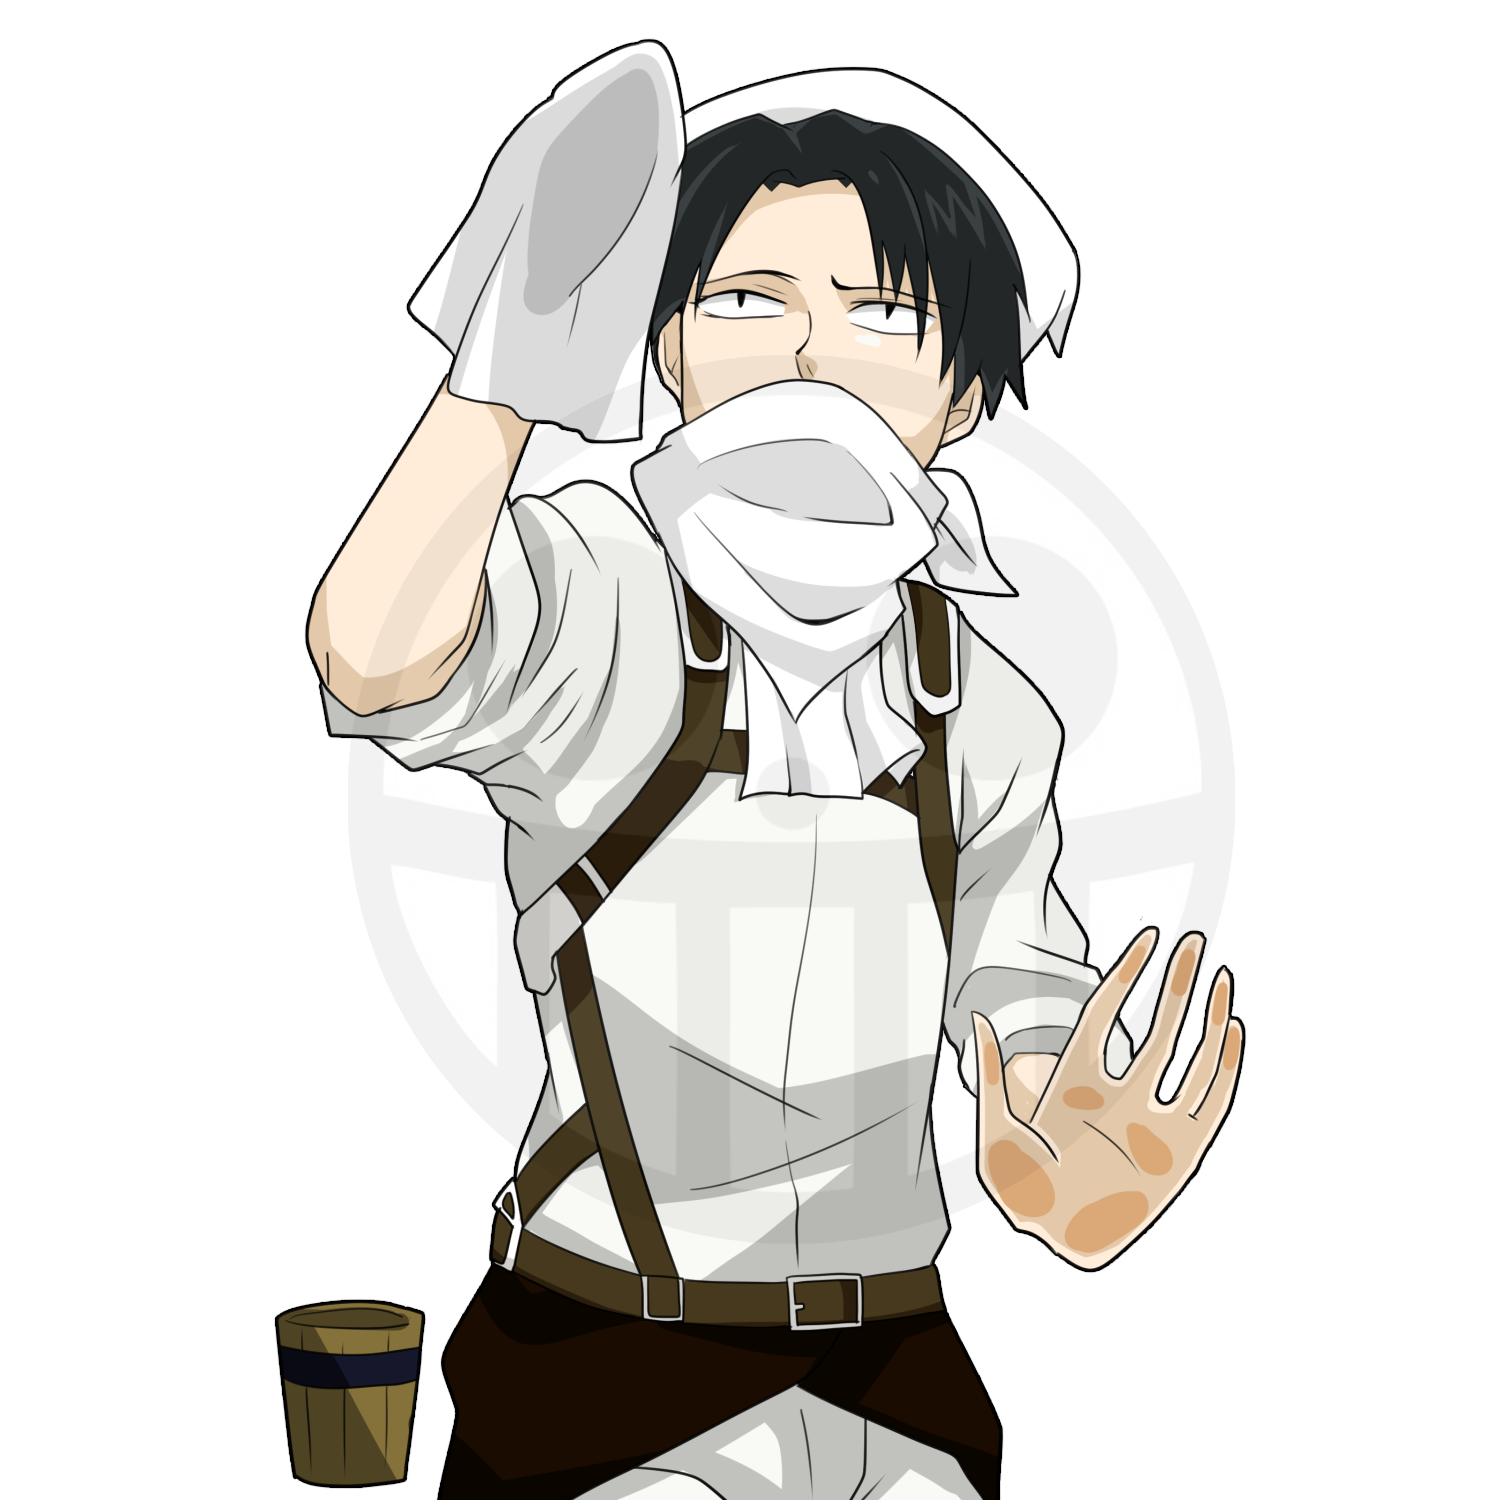 Levi No Dust In My House Peeker Hentaku Anime Stickers ���via gridllr.com — quicker reblogging! levi no dust in my house peeker